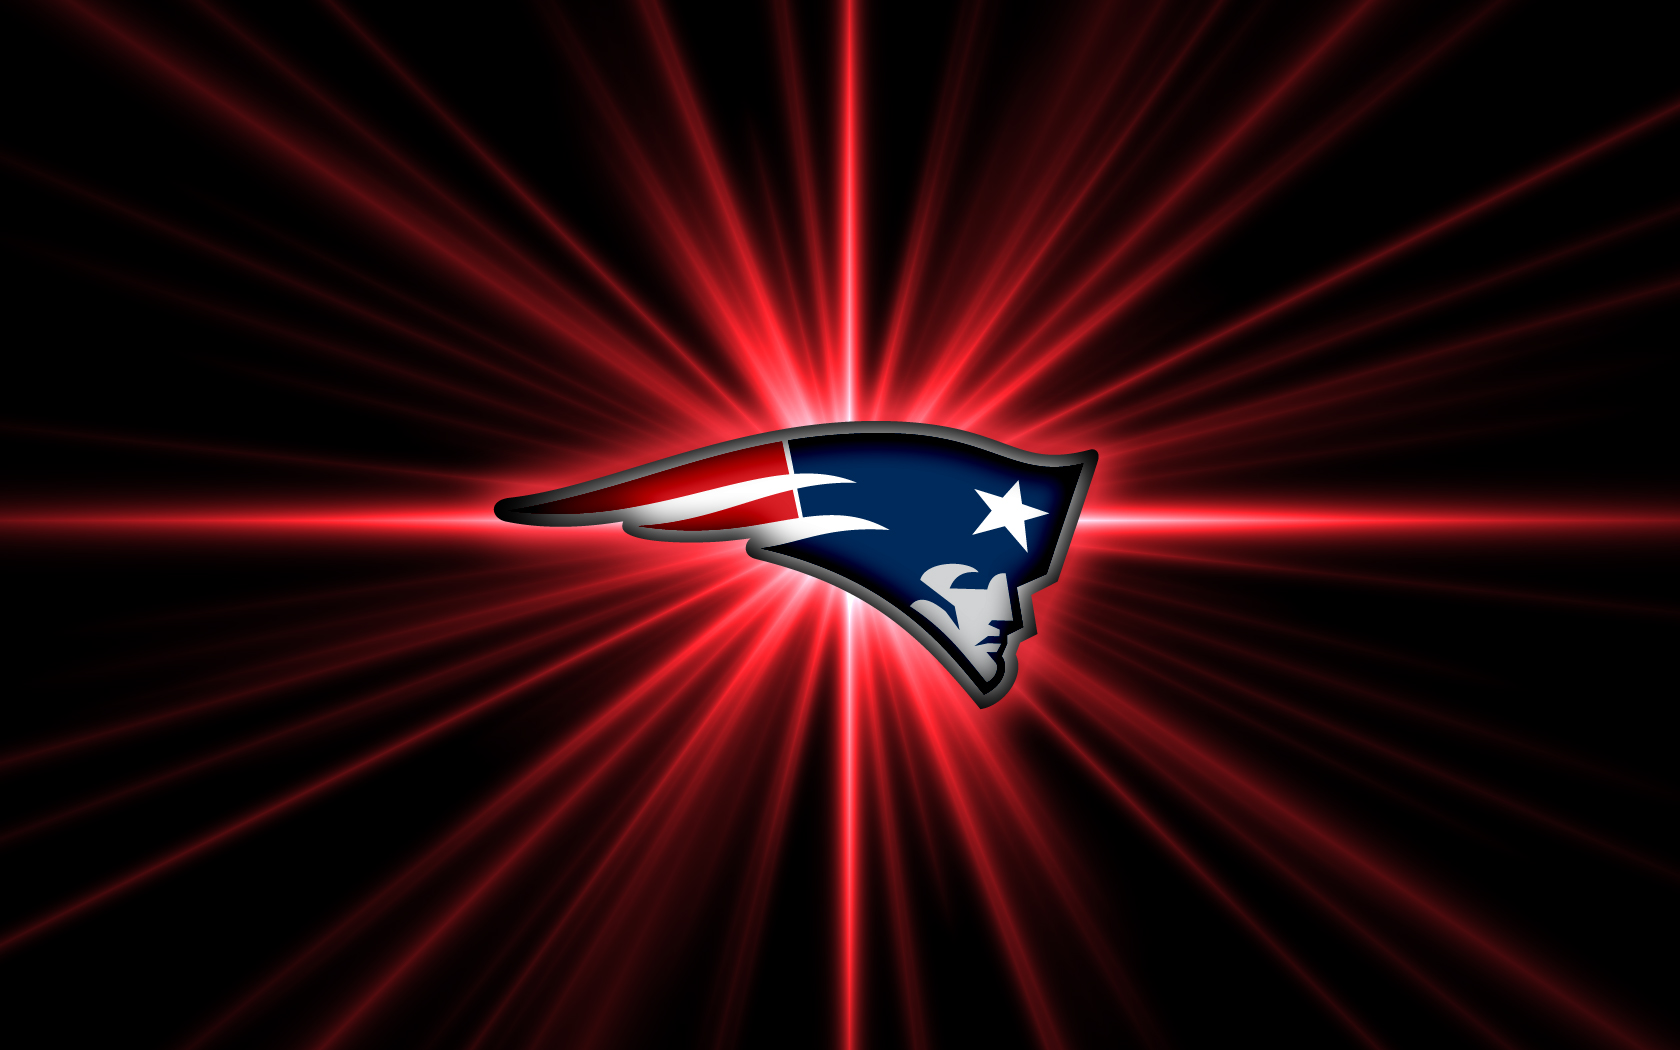 New england patriots wallpaper 5518 1680x1050 px hdwallsource new england patriots wallpaper 5518 voltagebd Gallery